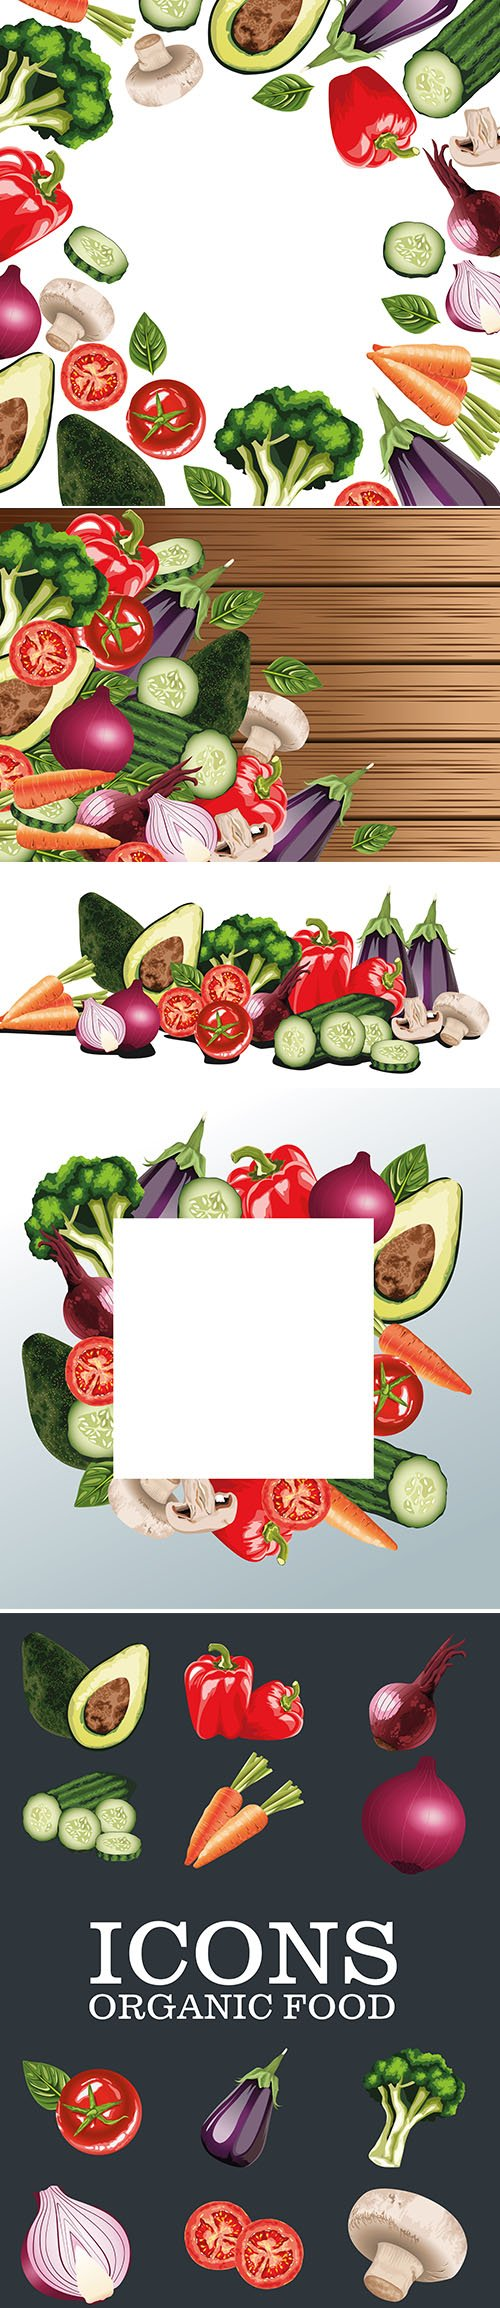 Set of fresh vegetables salad vector illustrations